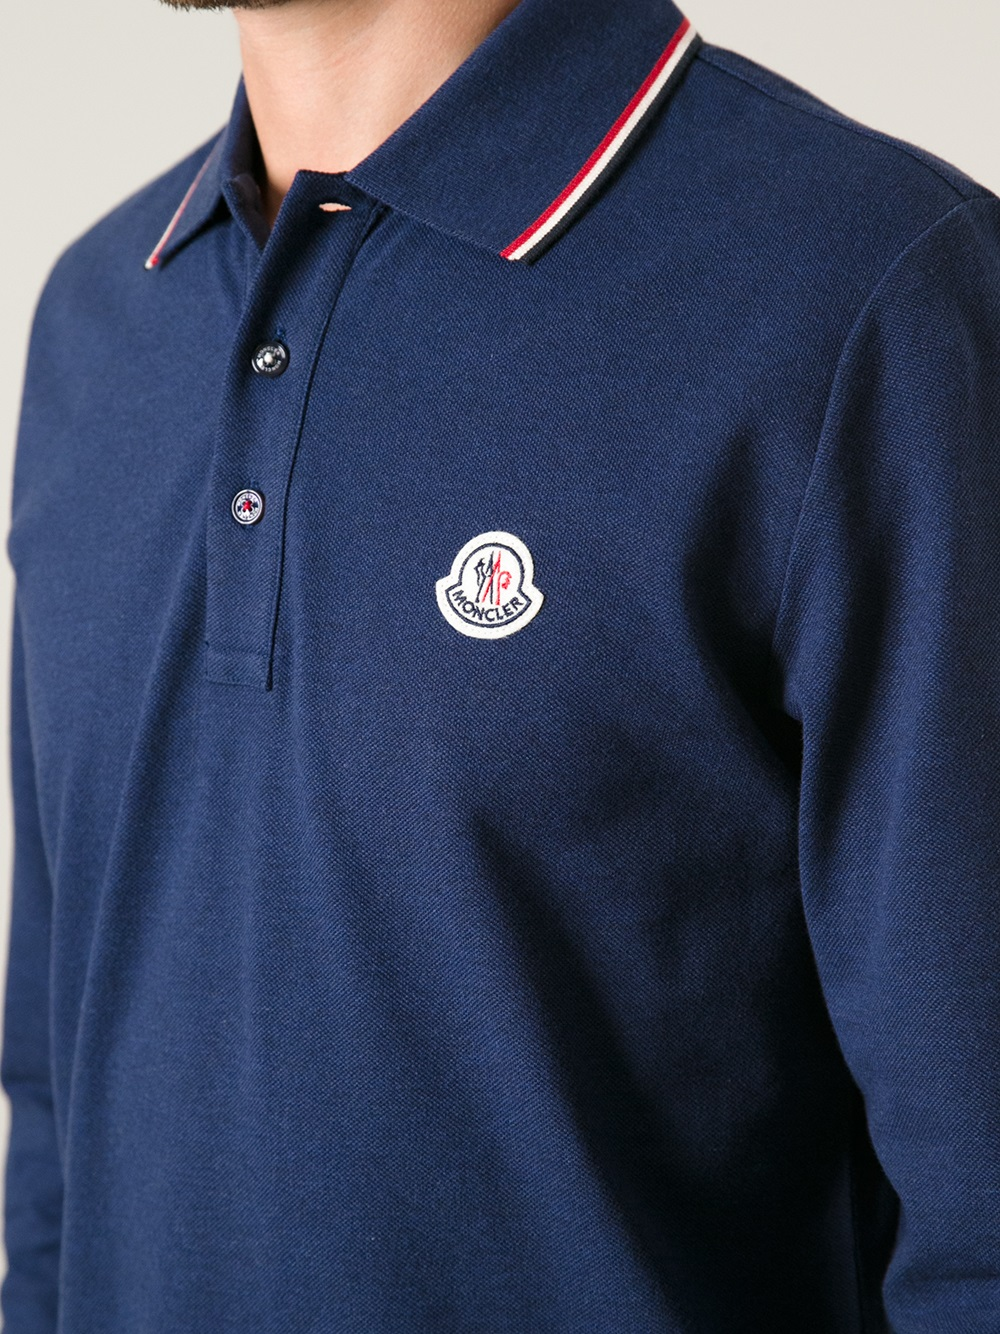 moncler long sleeve polo shirt in blue for men lyst. Black Bedroom Furniture Sets. Home Design Ideas